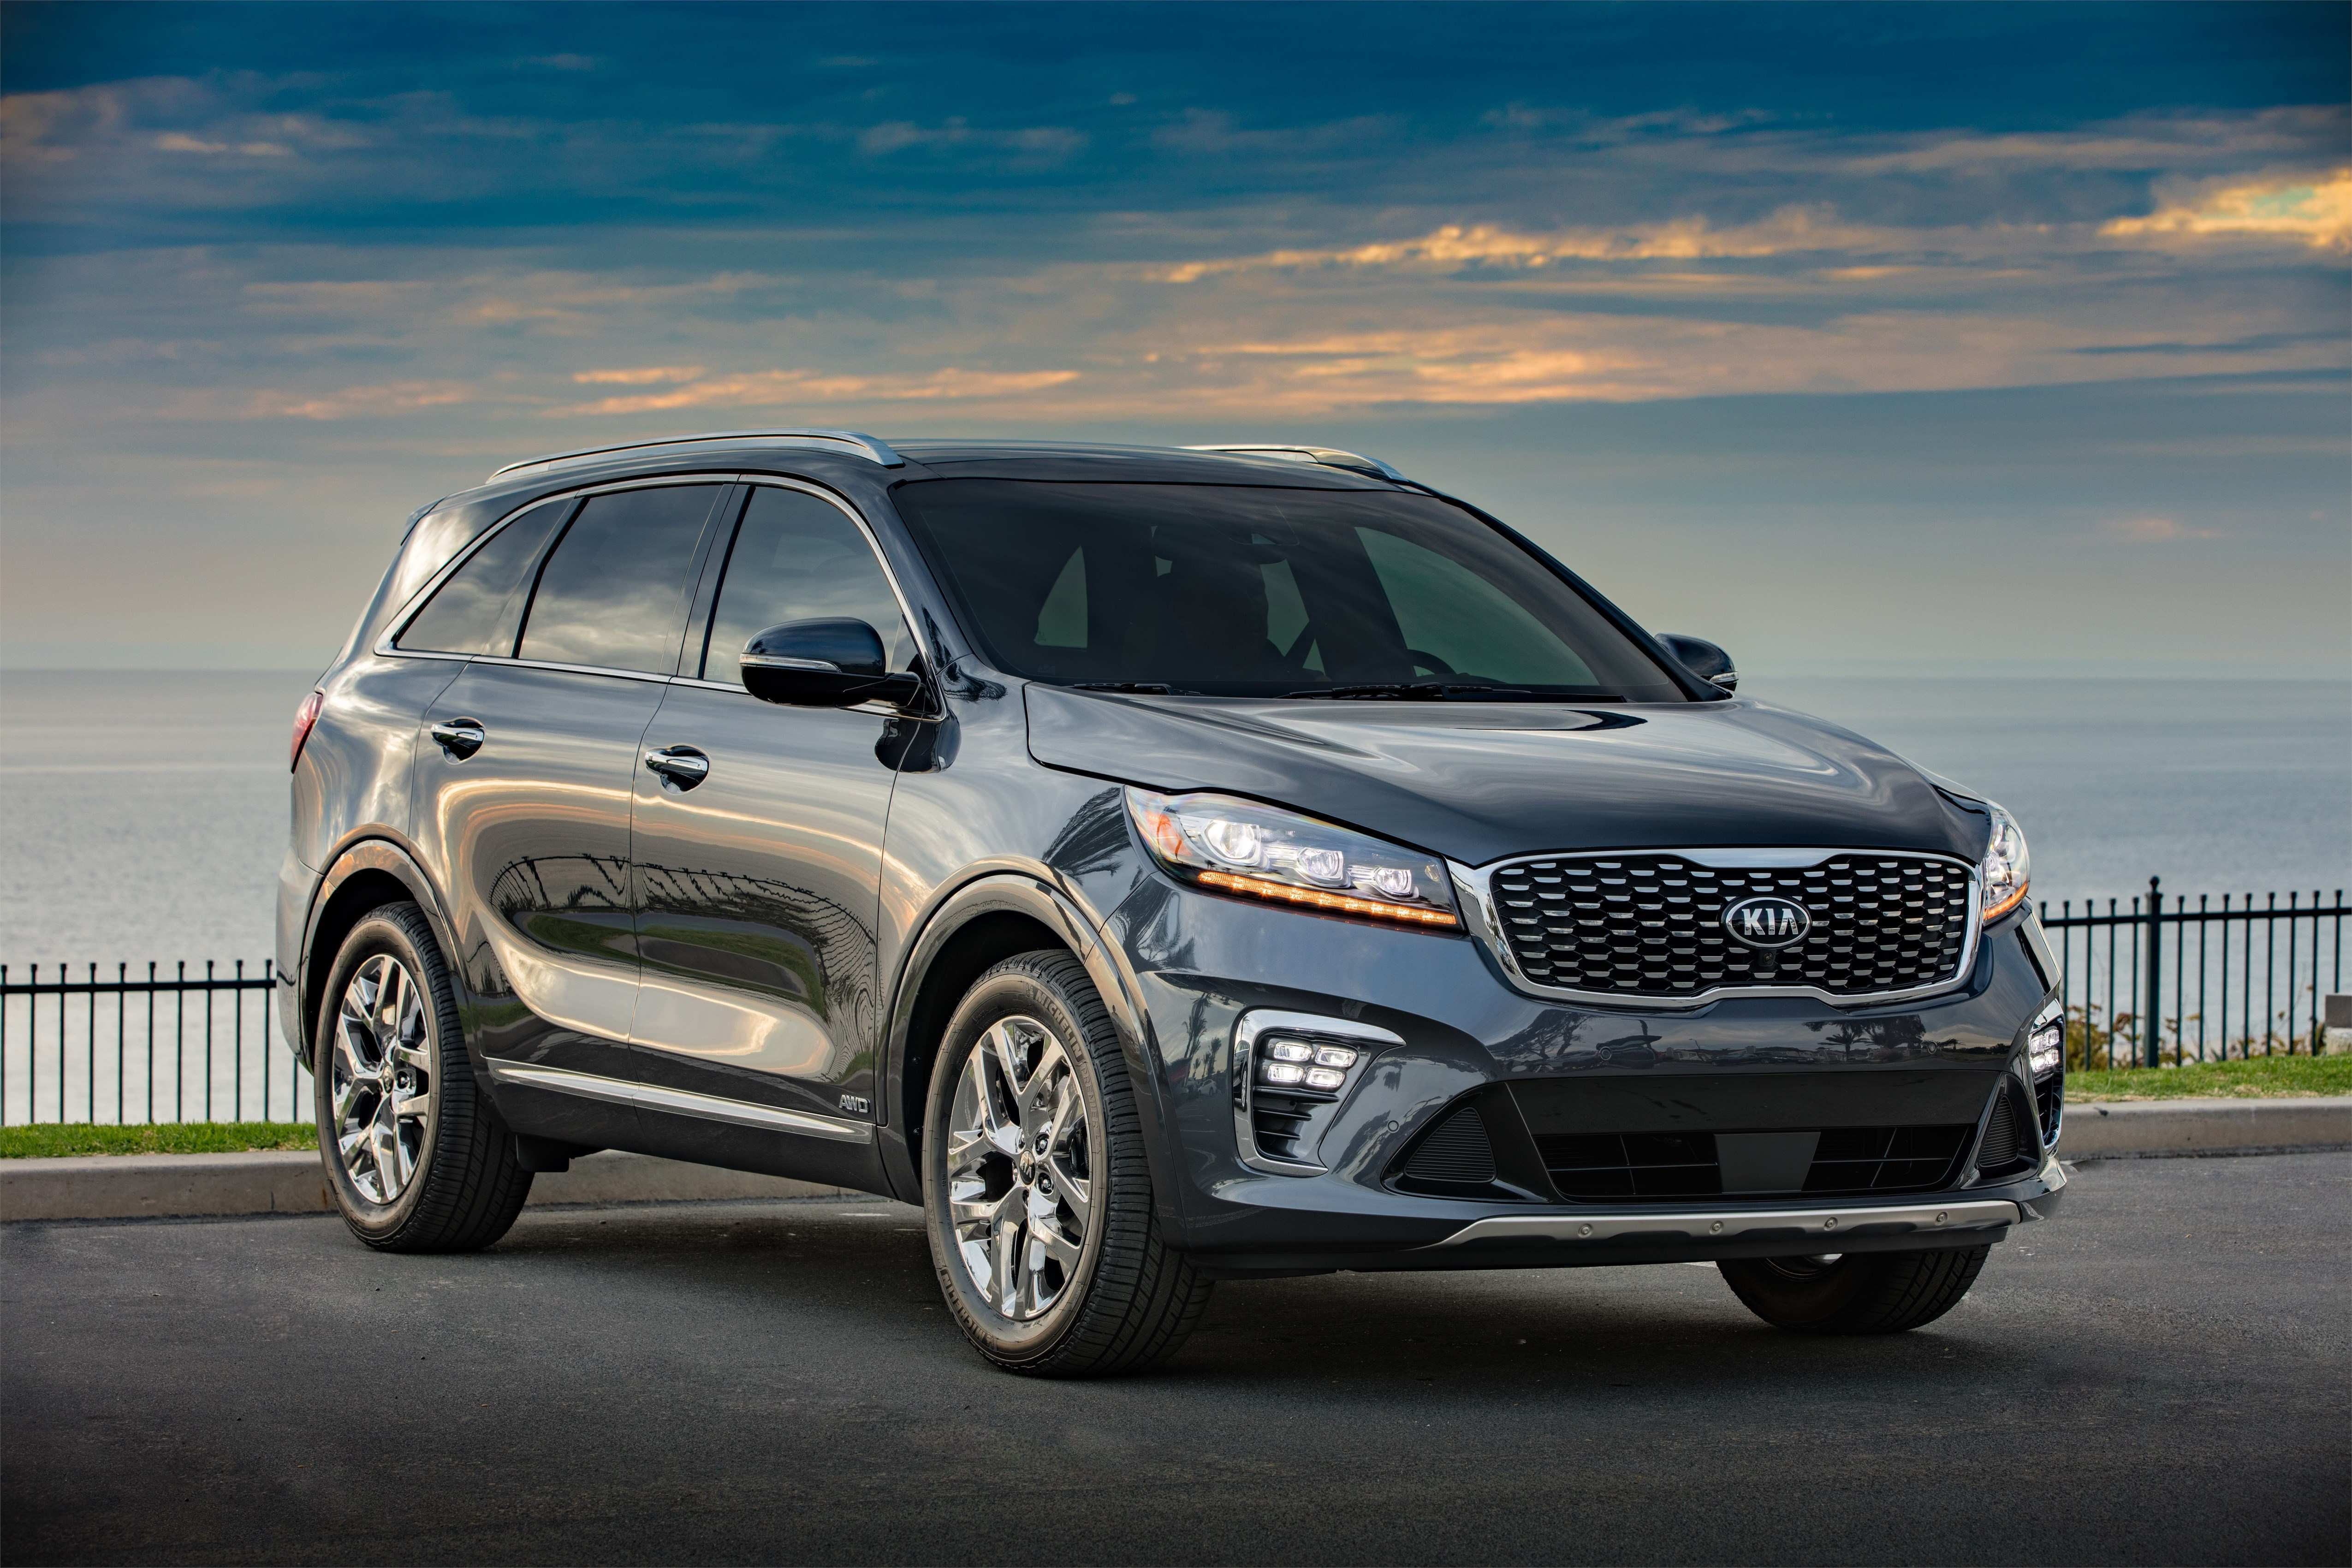 62 All New 2019 Kia Sorento Review Pricing